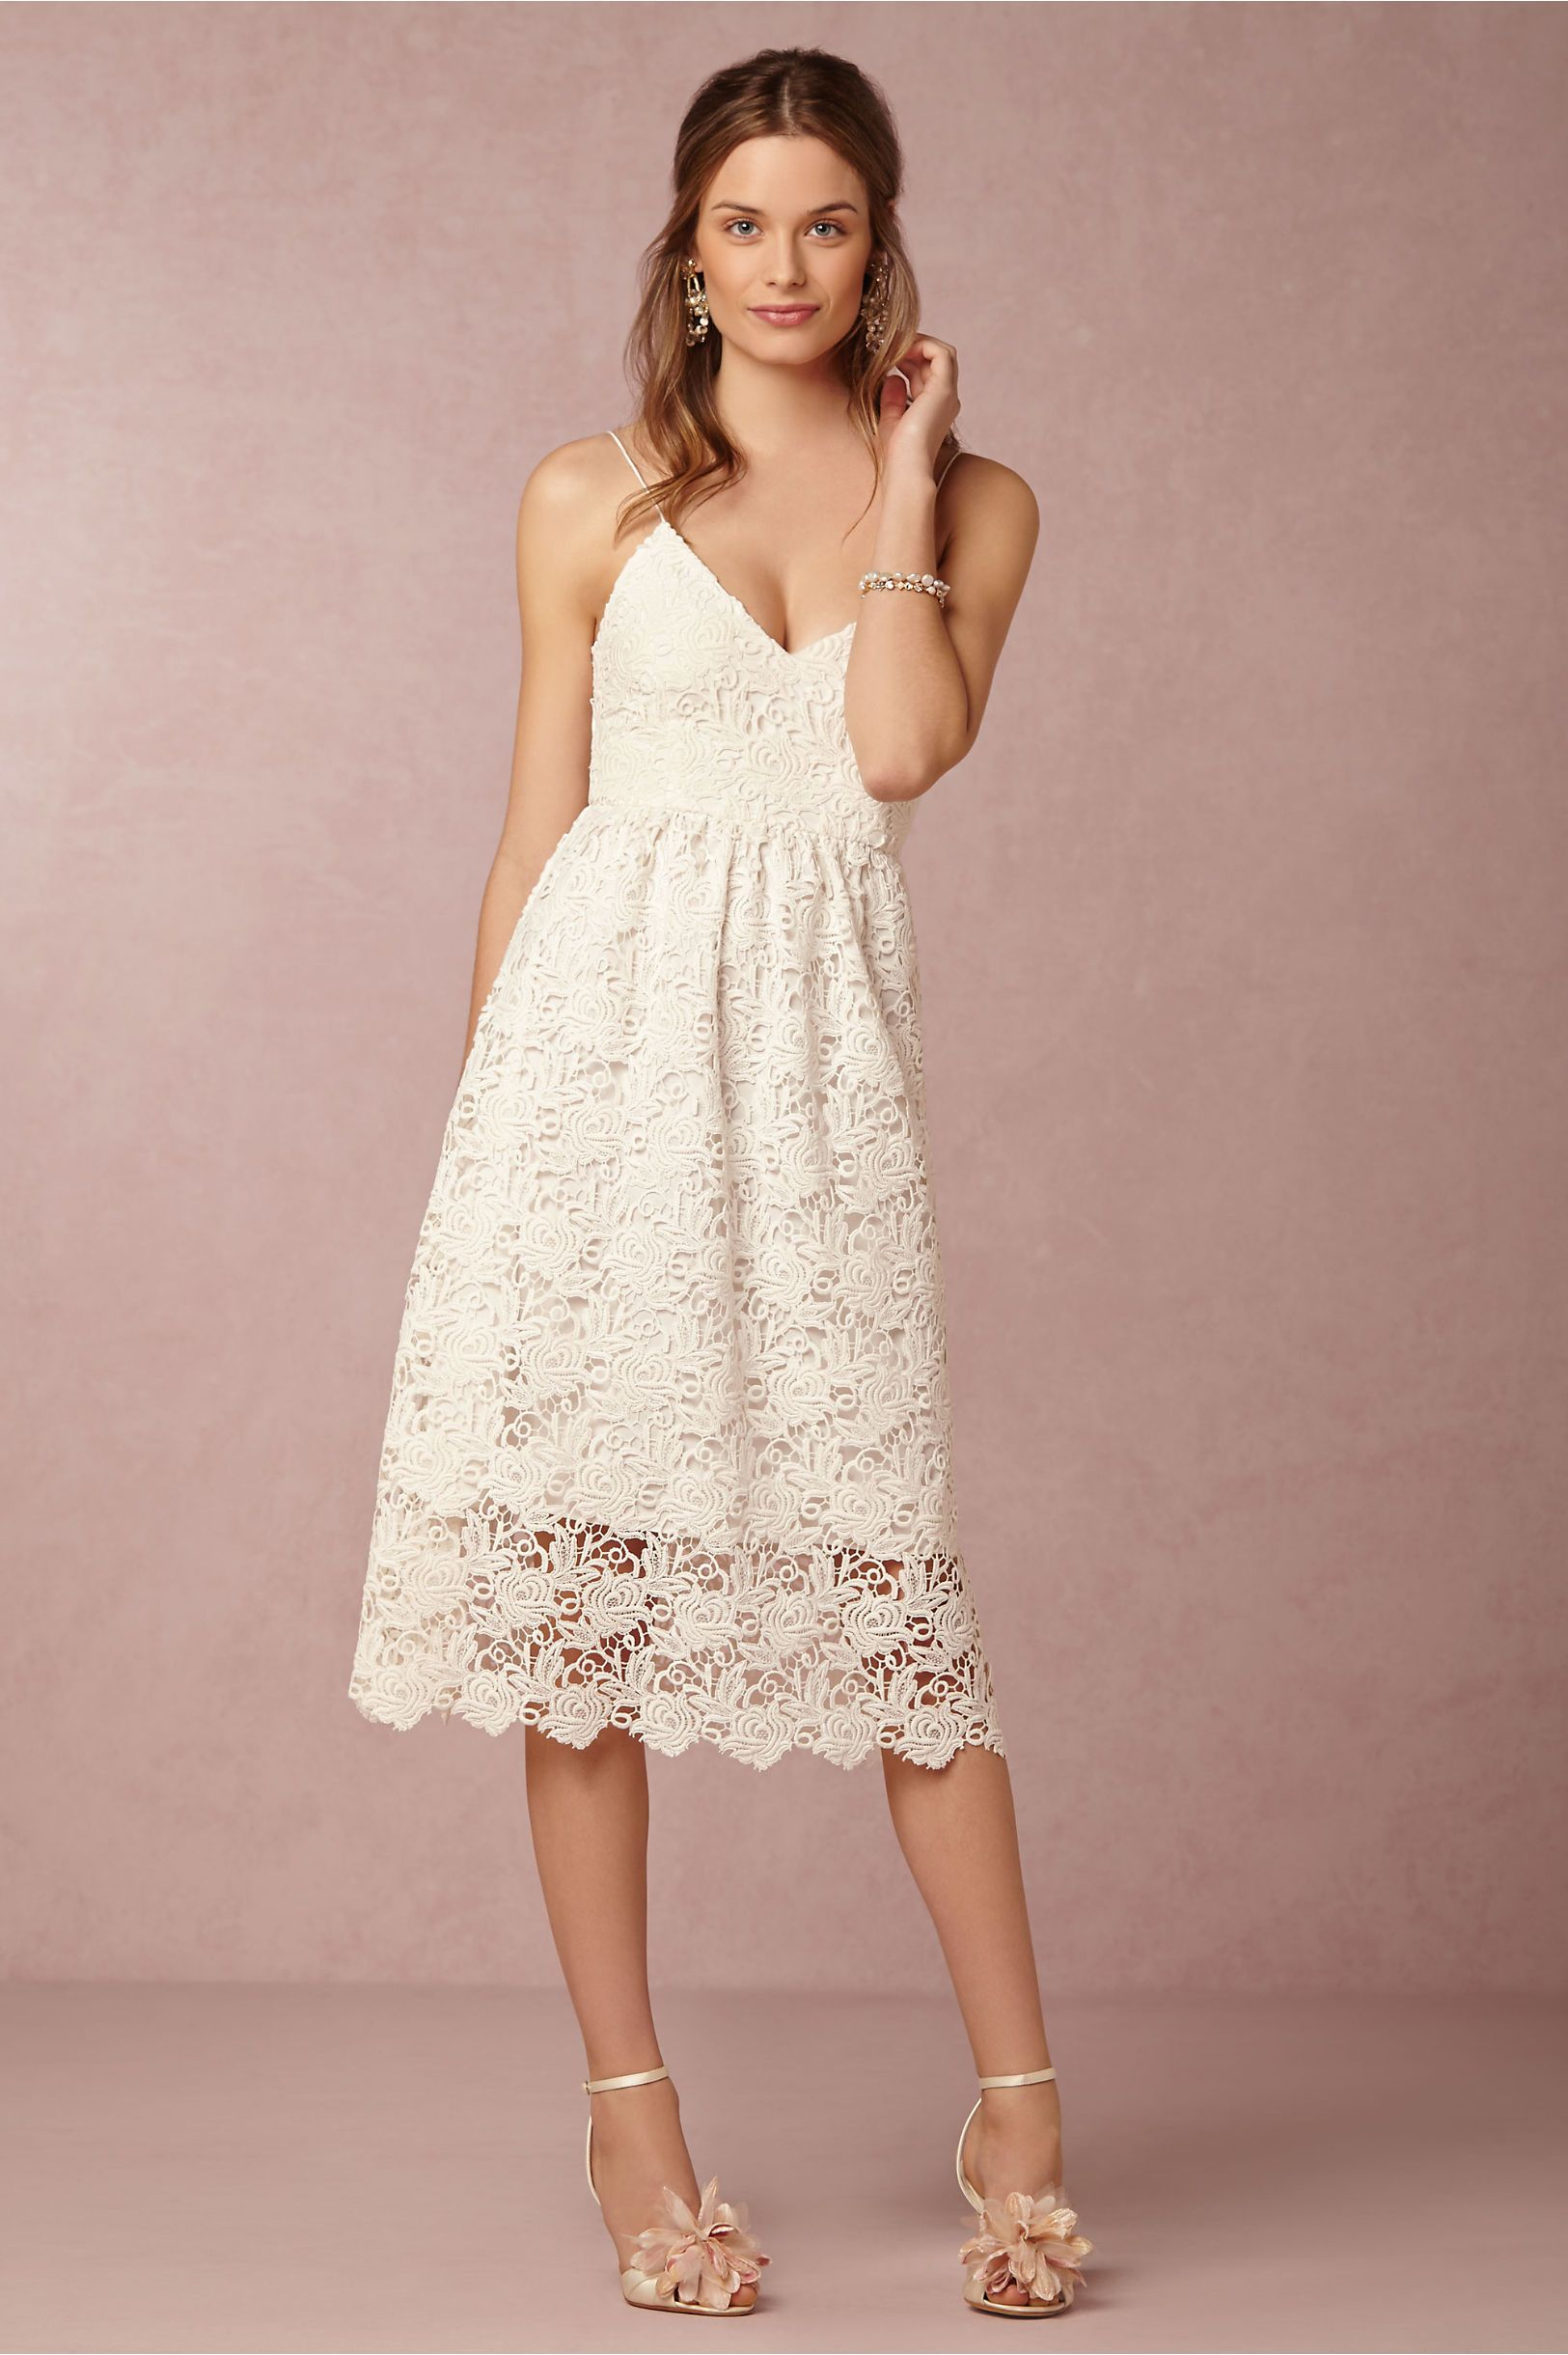 Fabulous Bridal Shower Dresses To Wear If Youre The Bride